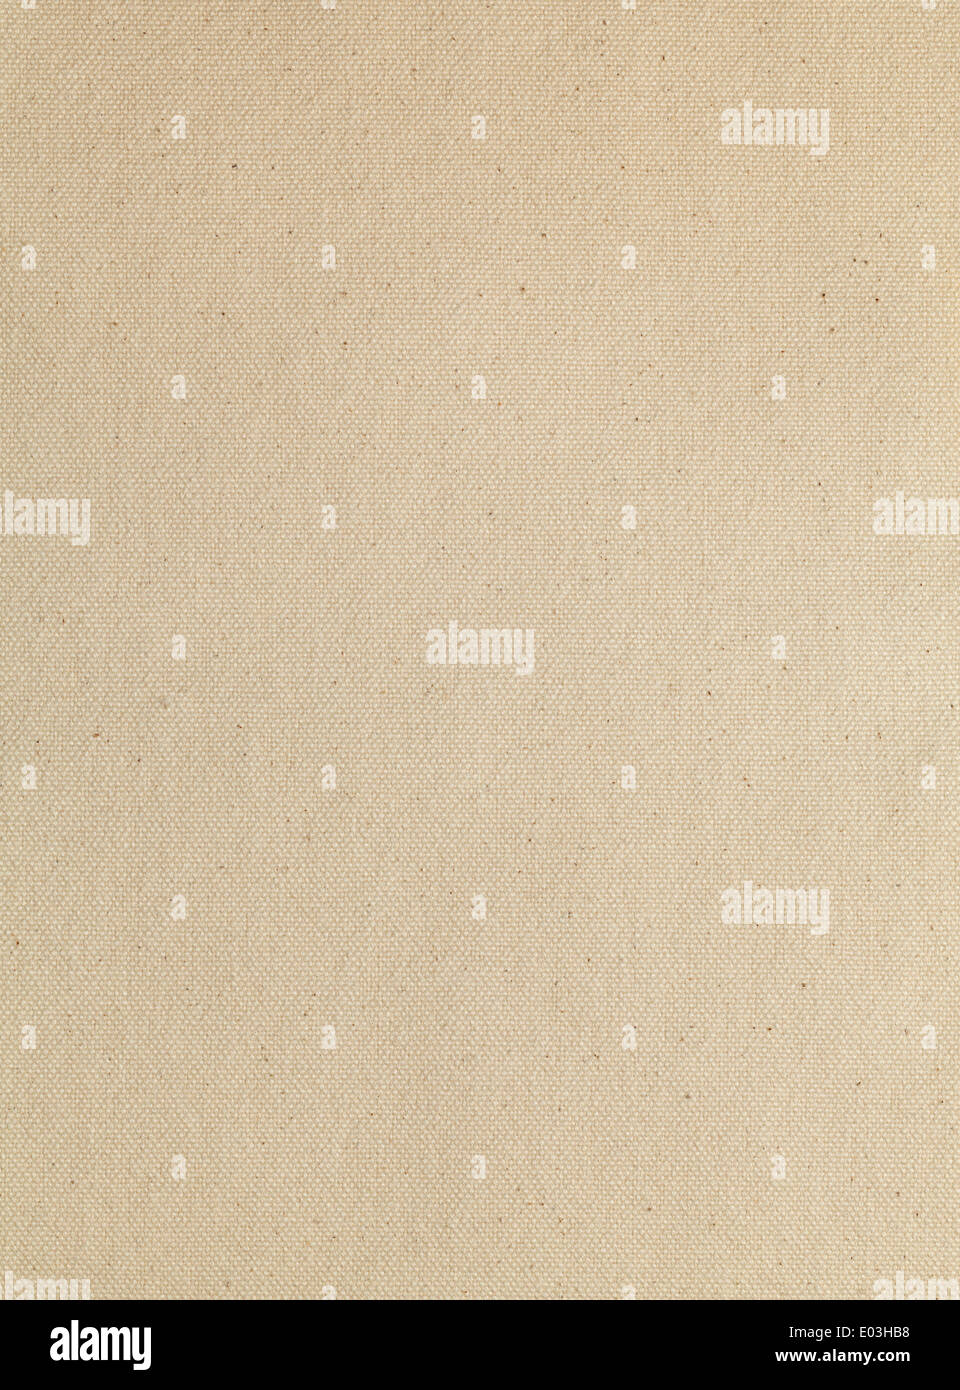 Empty Fabric Canvas Texture with Copy Space. - Stock Image